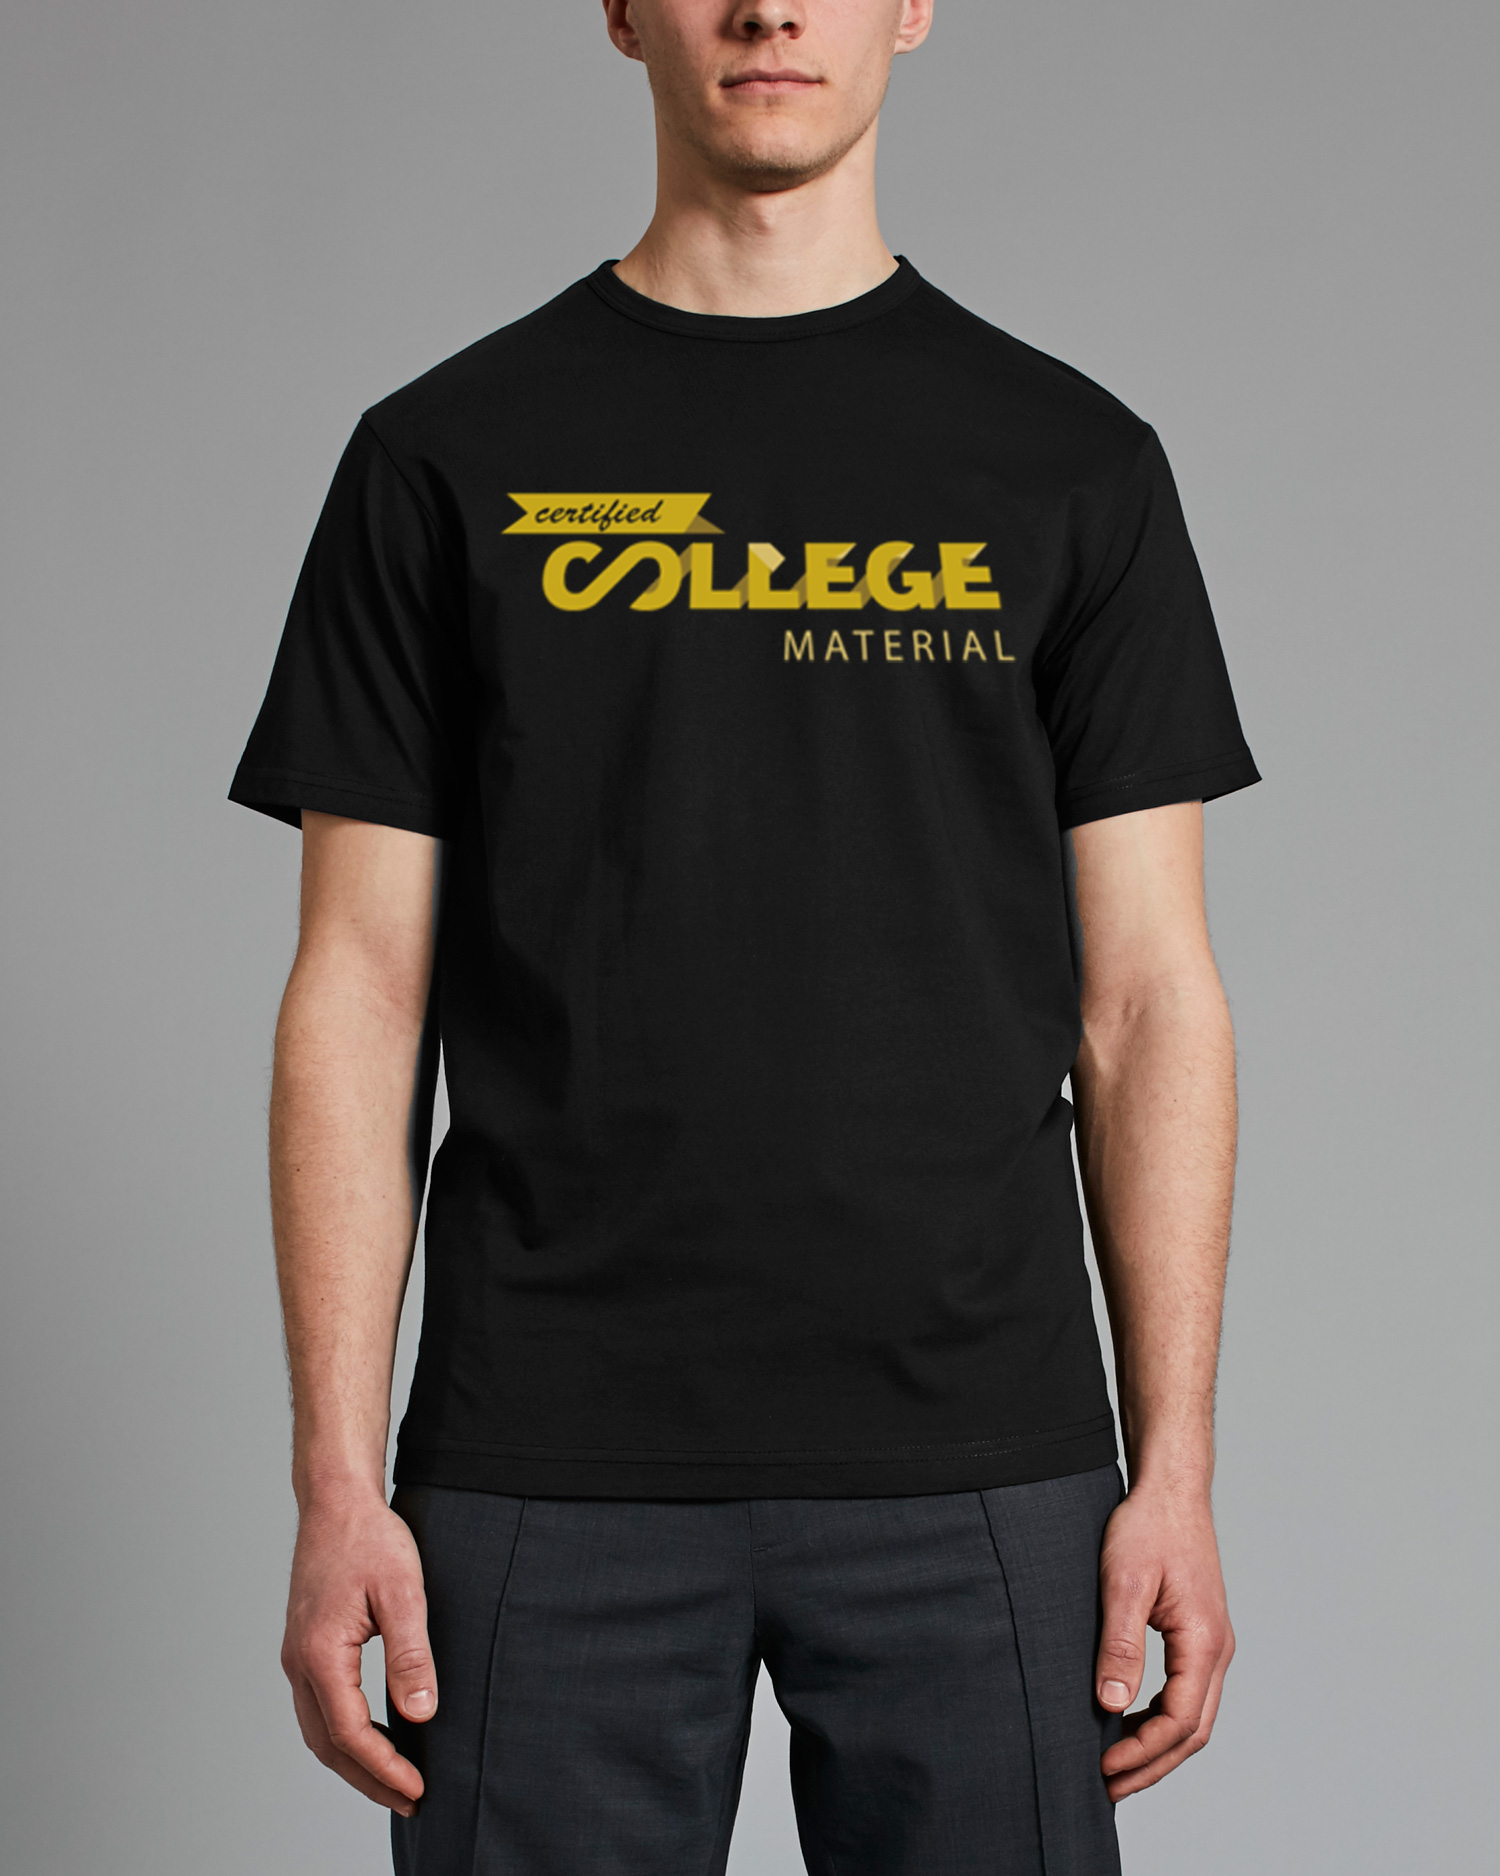 College Material Tee